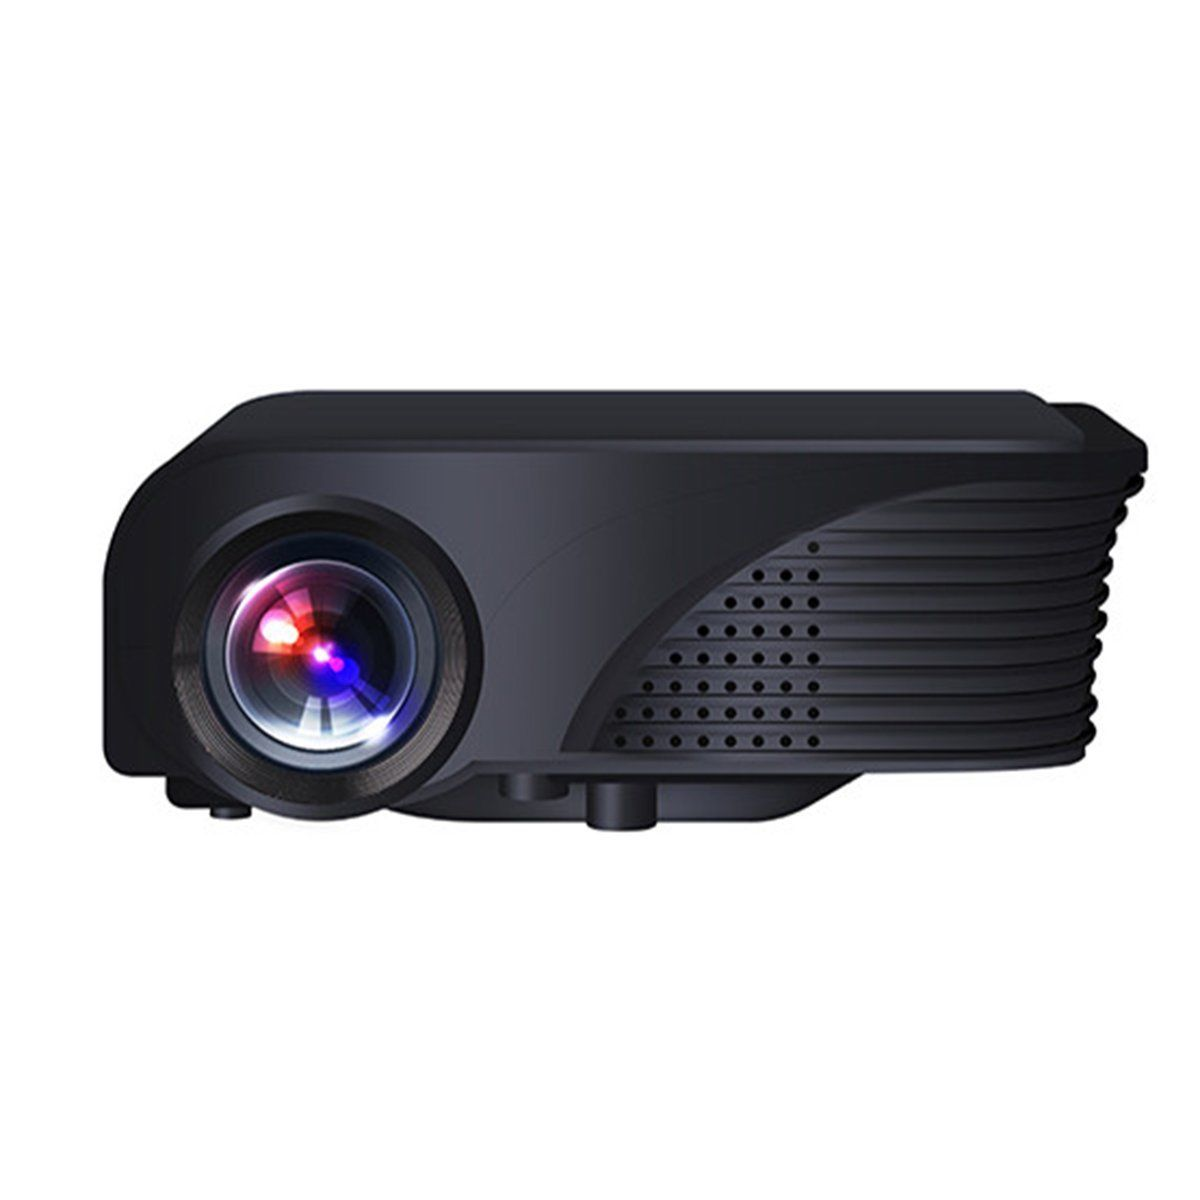 Portable s320 mini 1800 1800 lumens hd 1080p video for Hd projector small